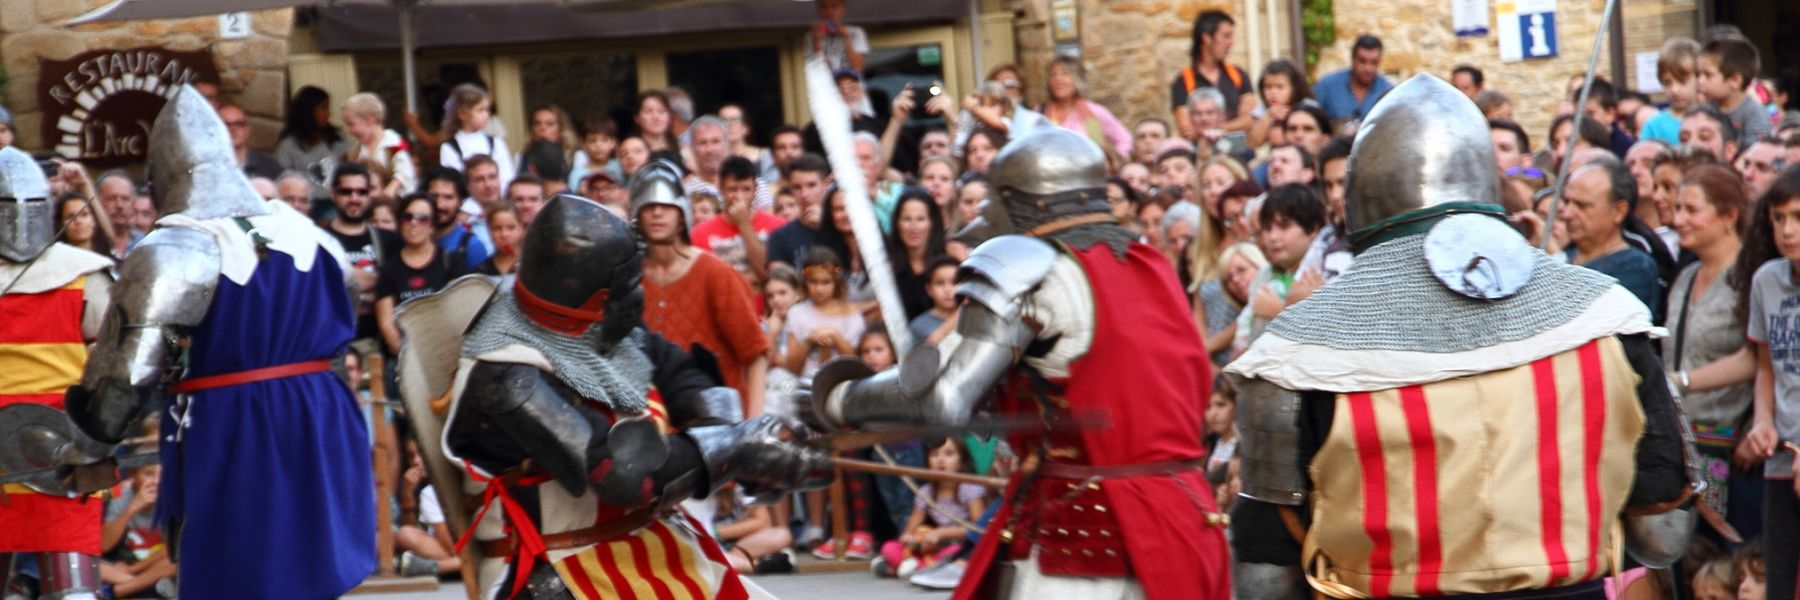 Medieval Fair of Peratallada